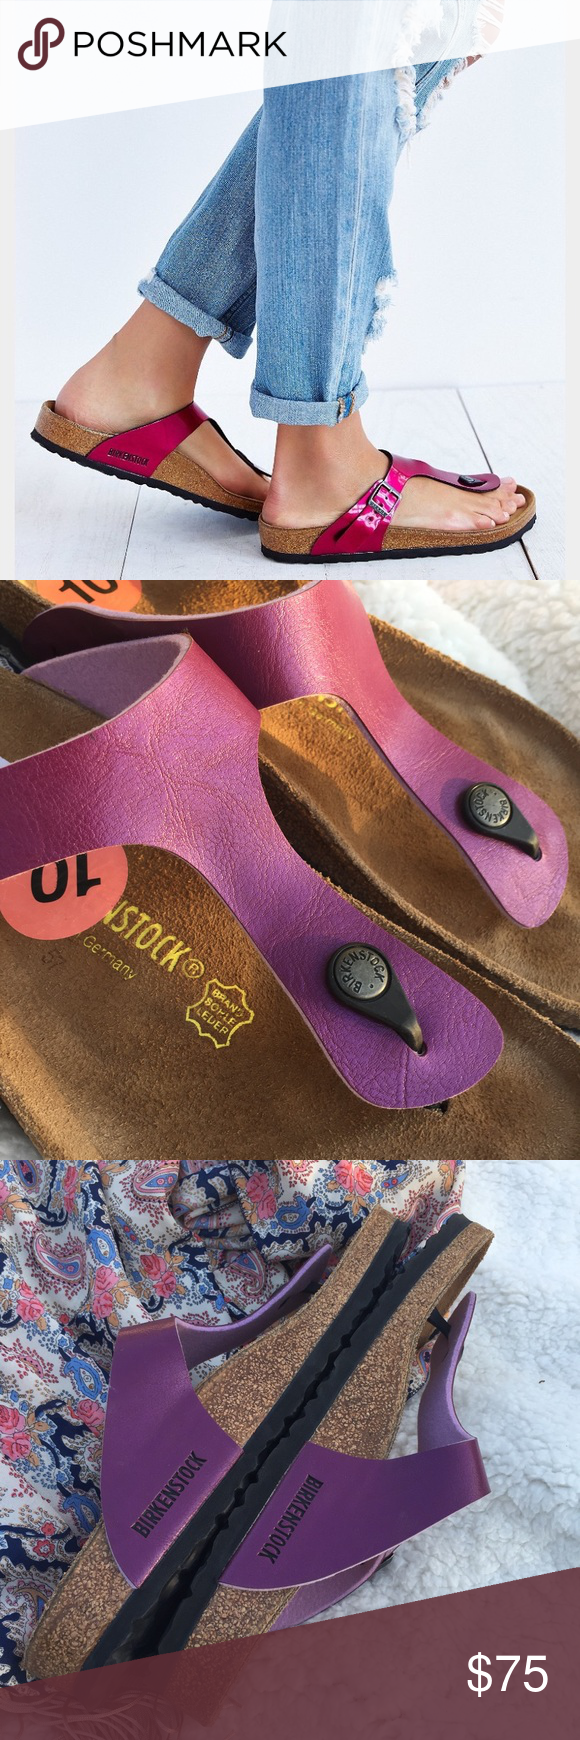 NWOT Birkenstock // Gizeh Sandal in Blackberry The brand's most iconic thong sandal, the Gizeh lends a sleek, stylish look that pairs well with almost any outfit. Comfort is a give-in thanks to the toe piece made of flexible resin that's anatomically designed to fit comfortably between the toes and the strap buckle that promises a secure fit. Slip into the Gizeh for simple, comfortable style. First picture is not of actual shoe. New without tags or box but have been tried on as they were a…